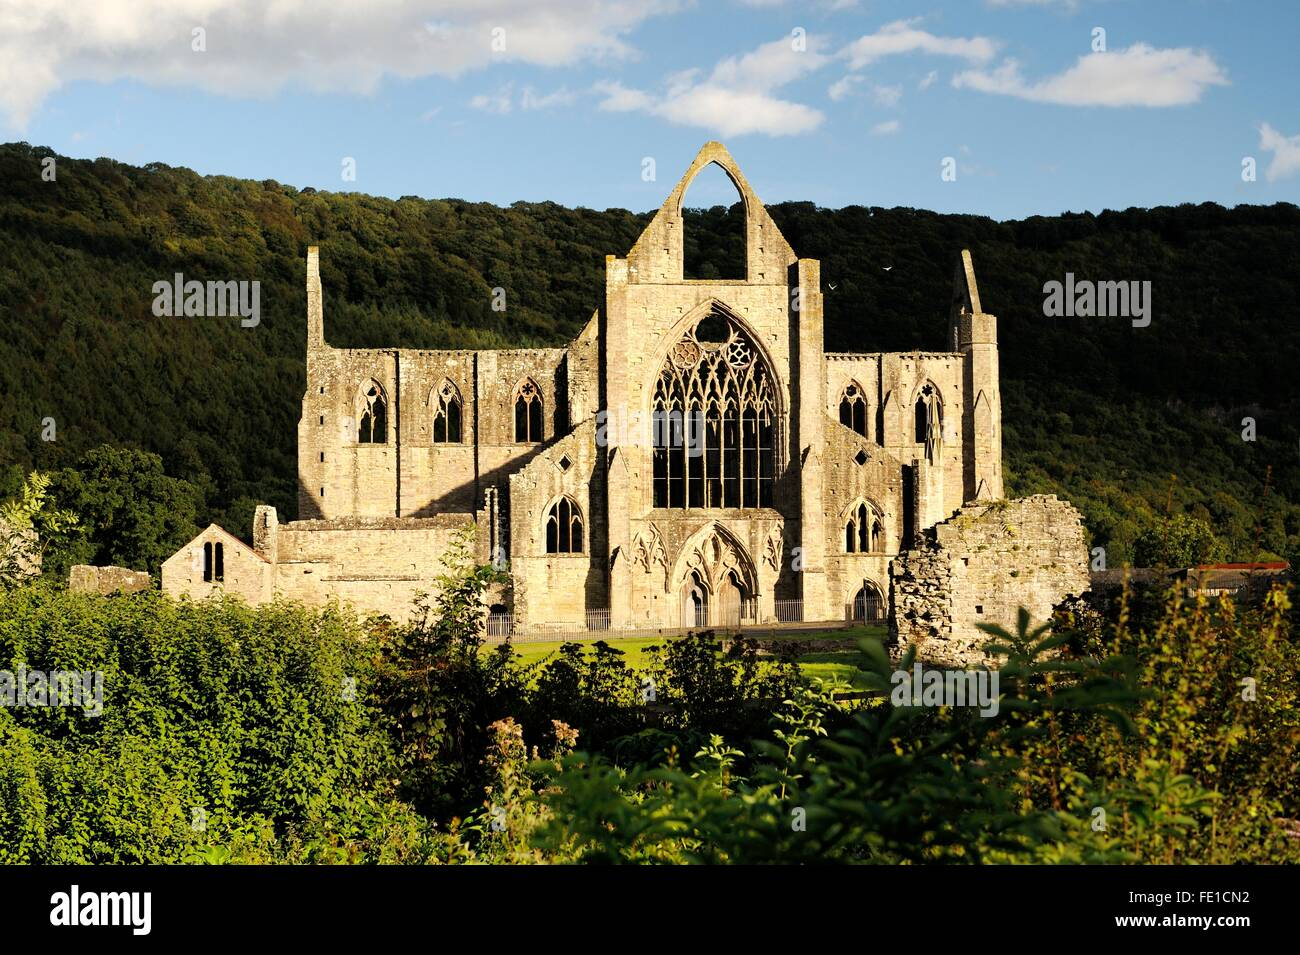 Tintern Abbey in the Wye Valley, Monmouthshire, Wales, UK. Cistercian Christian monastery founded 1131. Summer evening - Stock Image